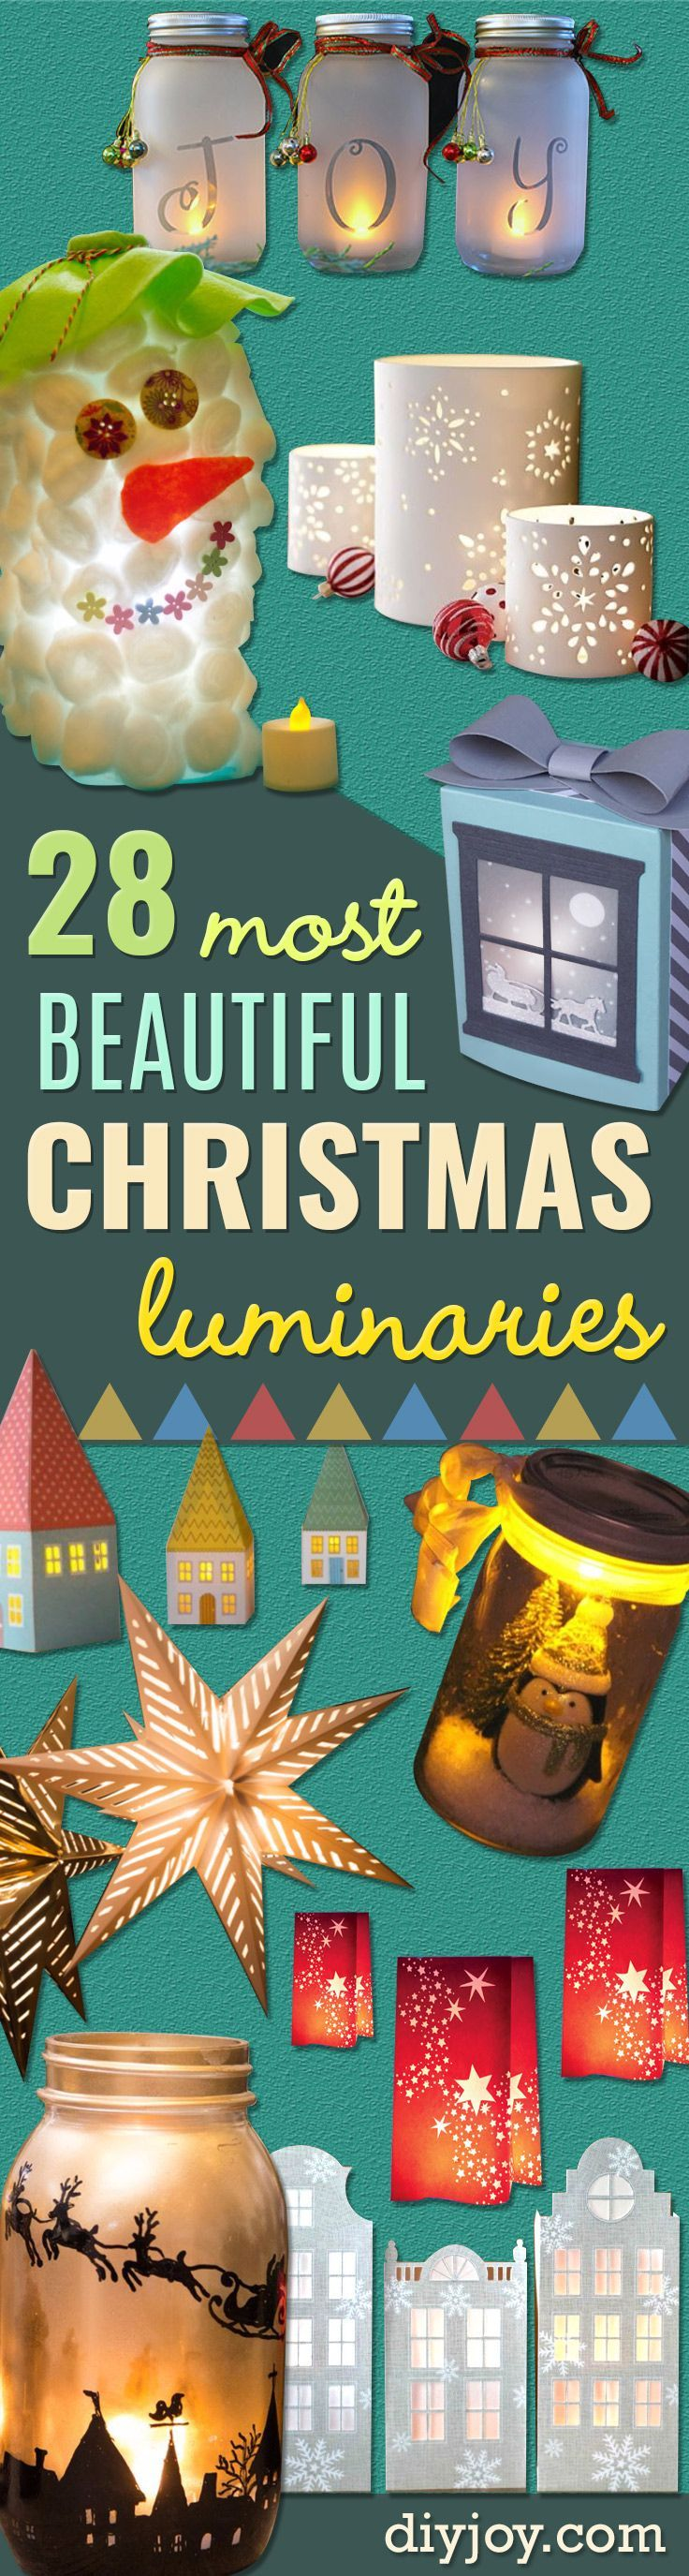 DIY Christmas Luminaries and Home Decor for The Holidays - Cool Candle Holders, Tea Lights, Holiday Gift Ideas, Christmas Crafts for Kids - Line Winter Walkways With Rustic Mason Jars, Paper Bag Luminaries and Creative Lighting Ideas http://diyjoy.com/diy-christmas-luminaries